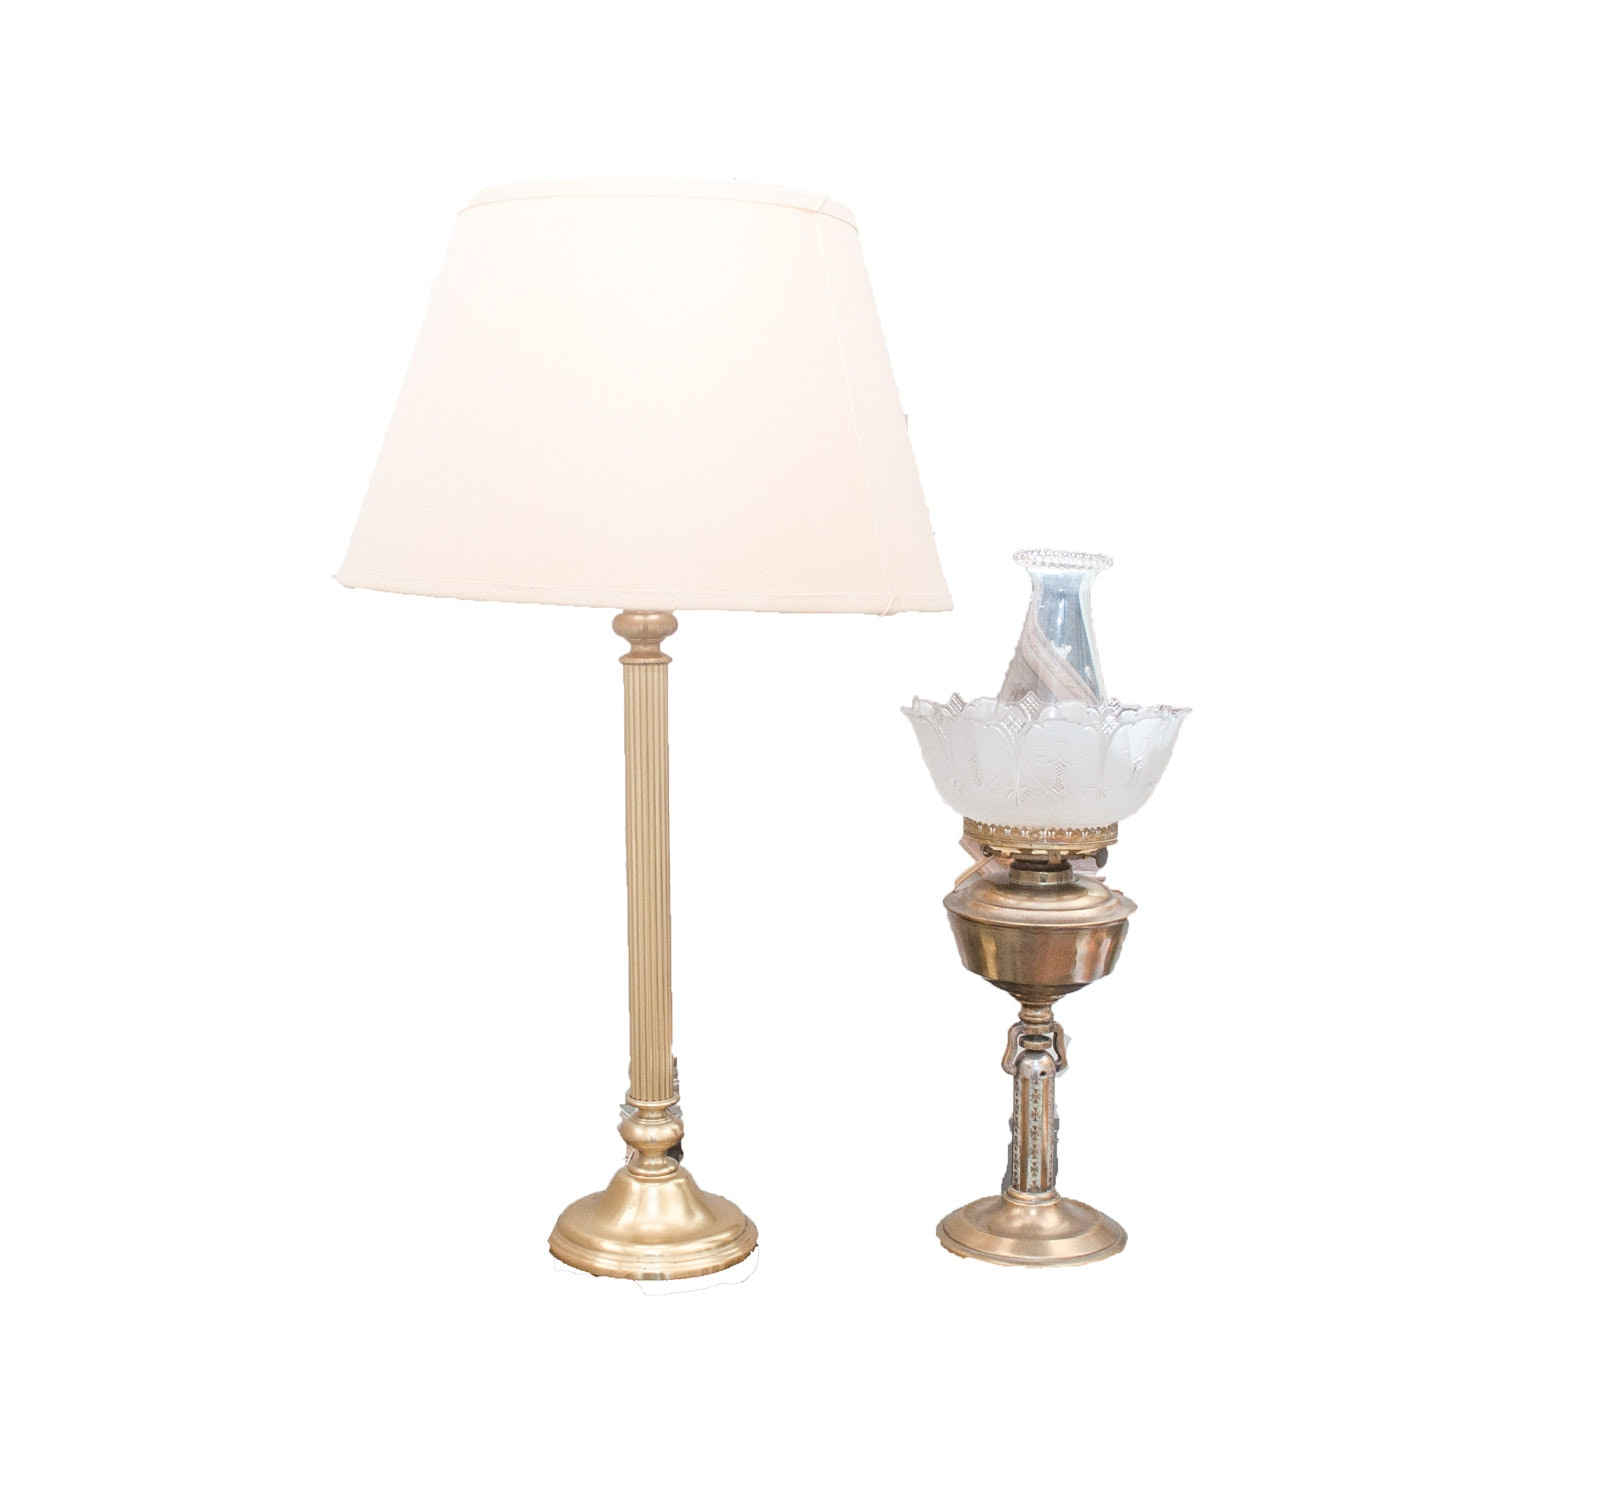 Pair of Brass Toned Table Lamps, Including Restoration Hardware